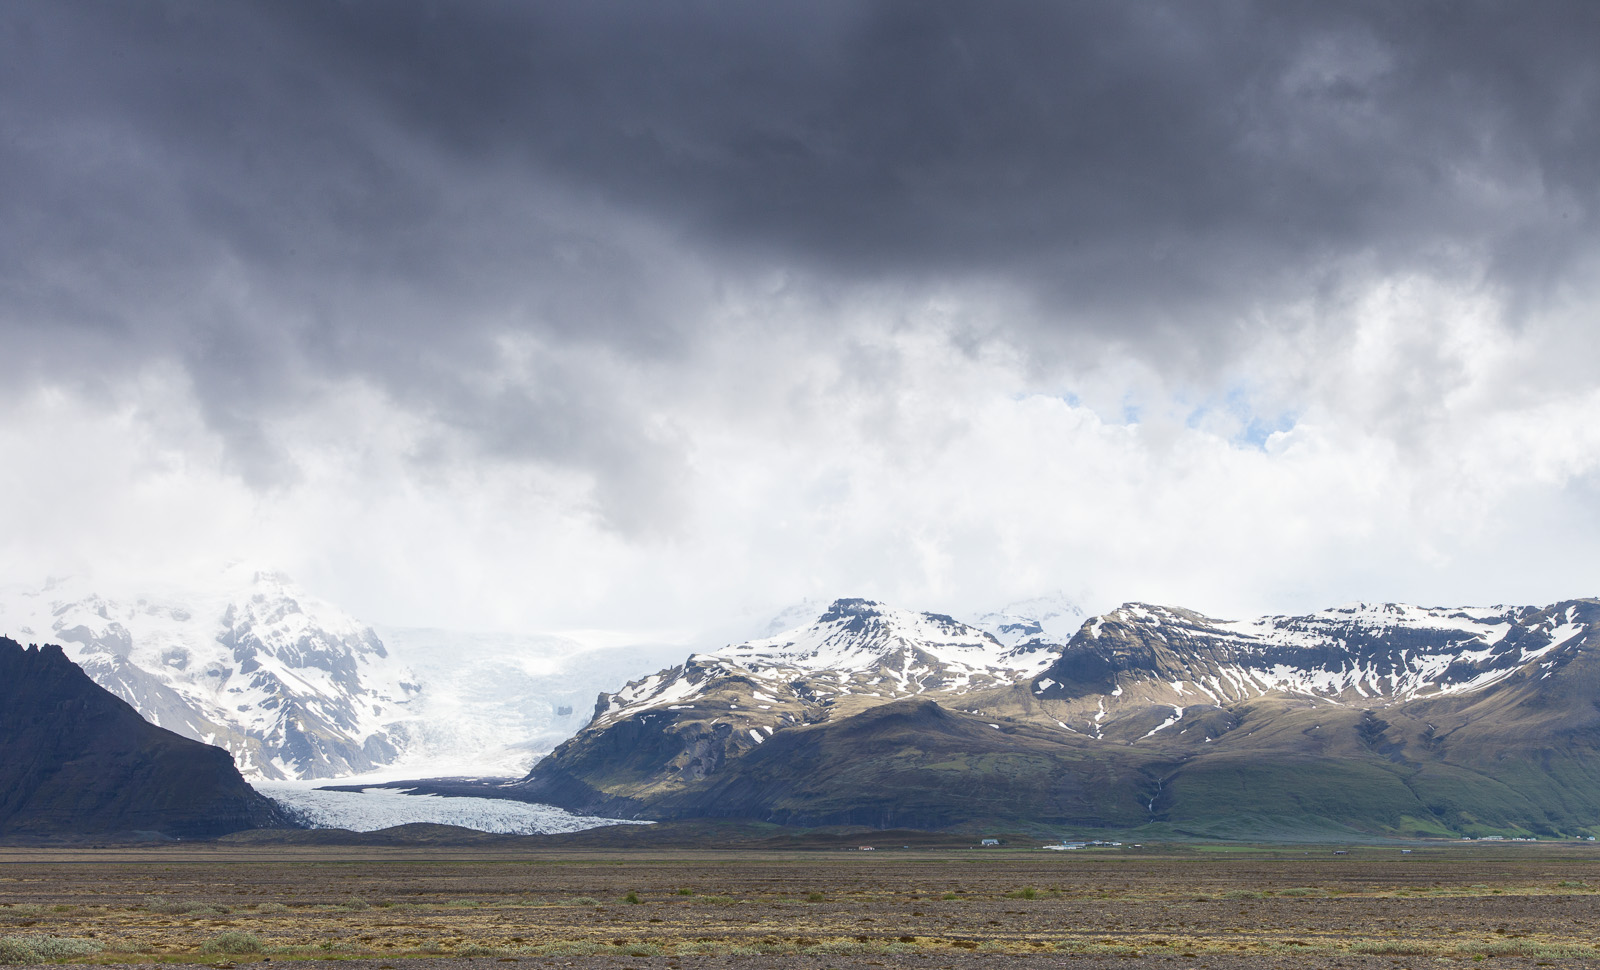 From a distance you get a real sense of the scale of Vatnajökull - Svinafellsjokull is a relatively small glacial tongue.